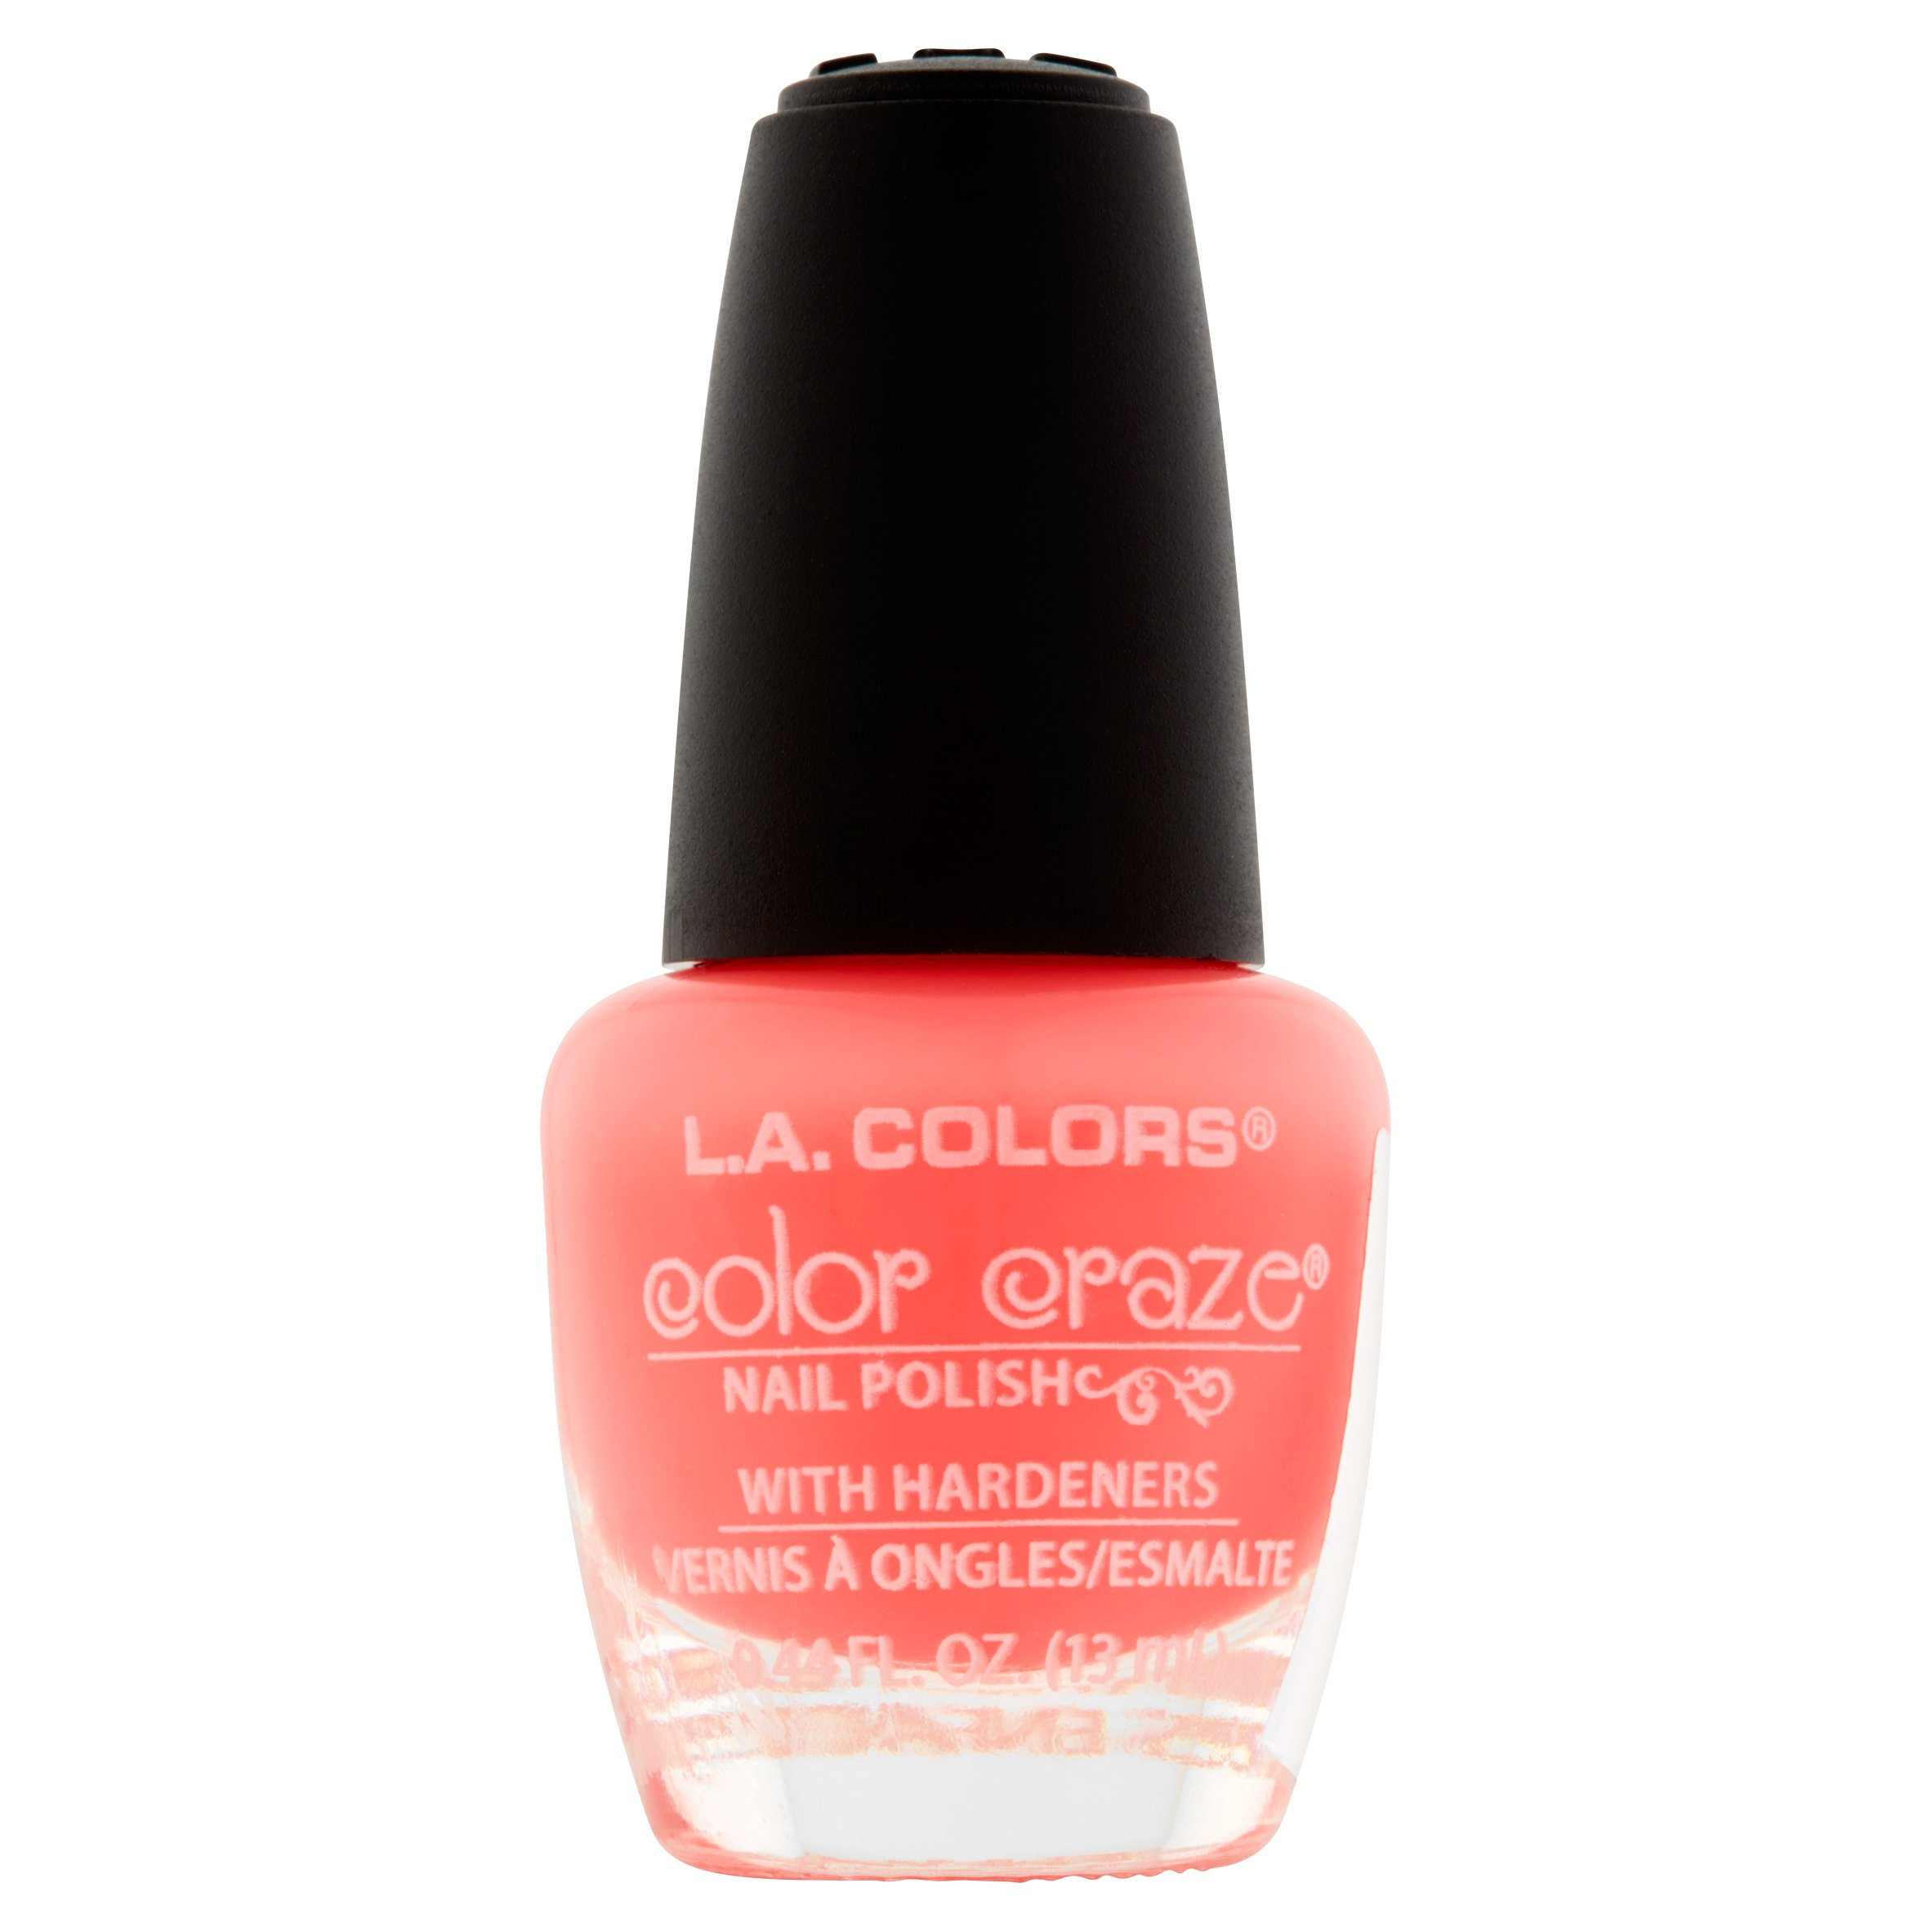 L.A. Colors Color Craze CNP537 Frill Nail Polish, 0.44 fl oz